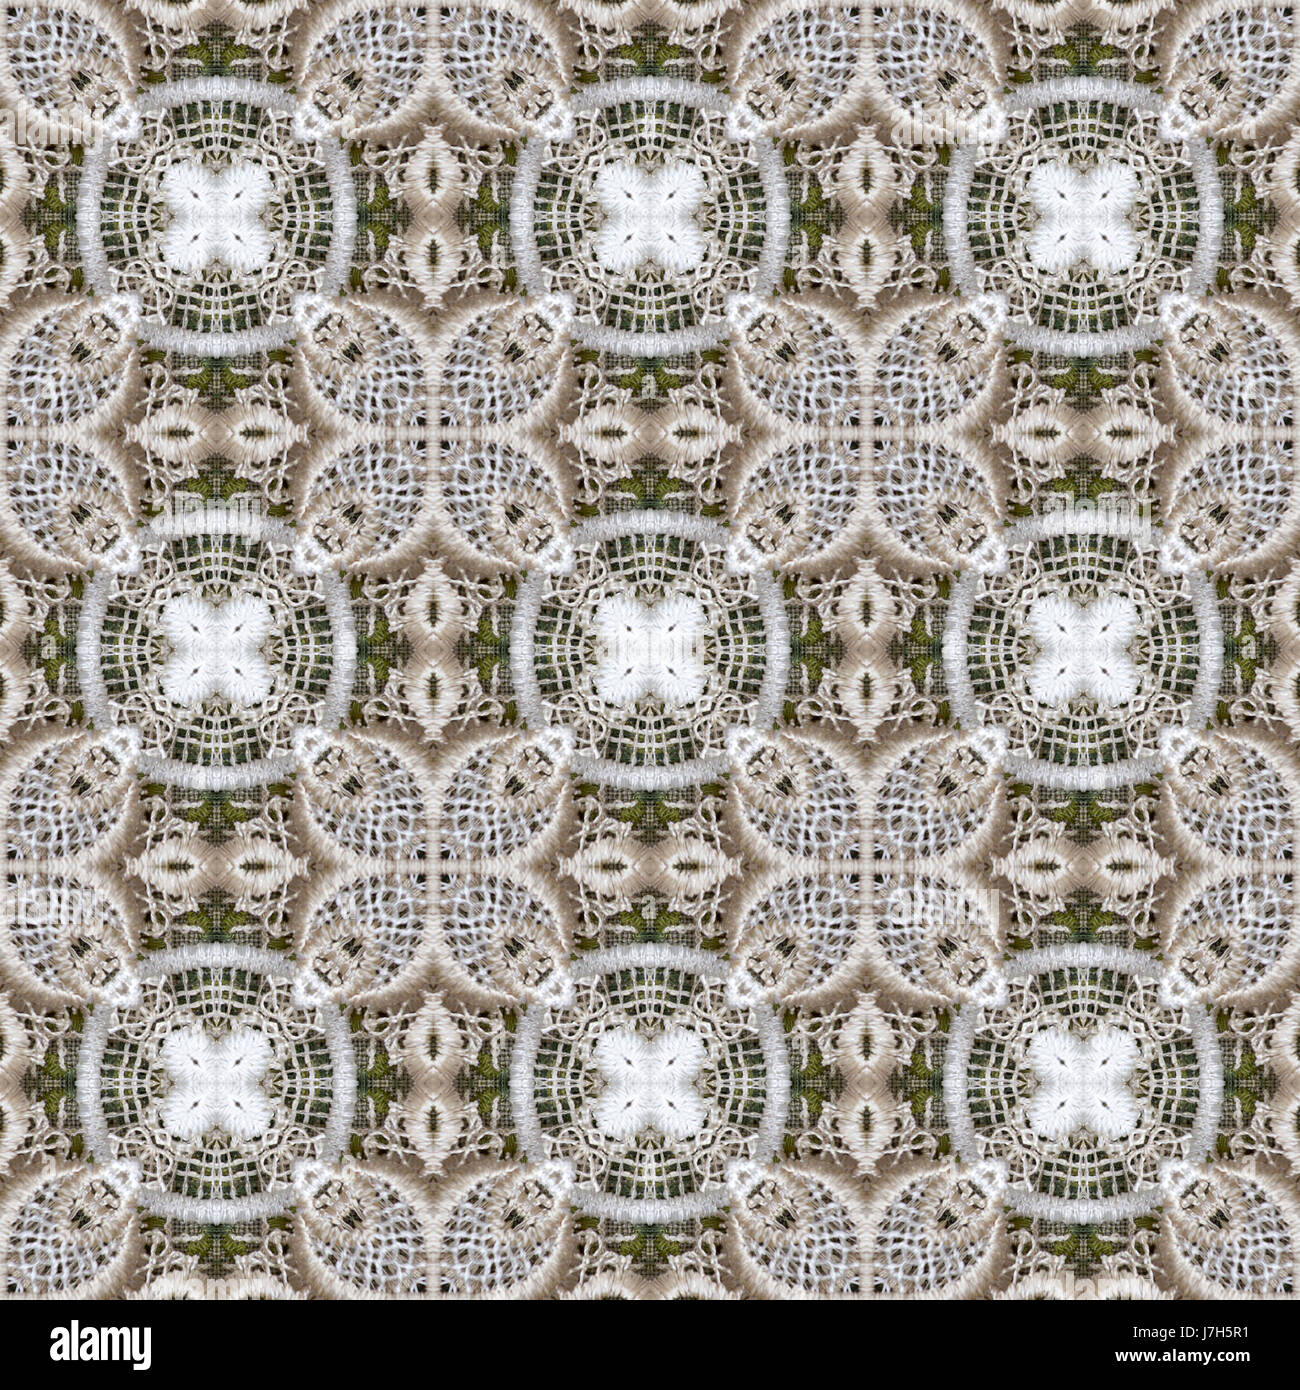 Seamlessly repeating lace pattern, digital collage from crocheted ...